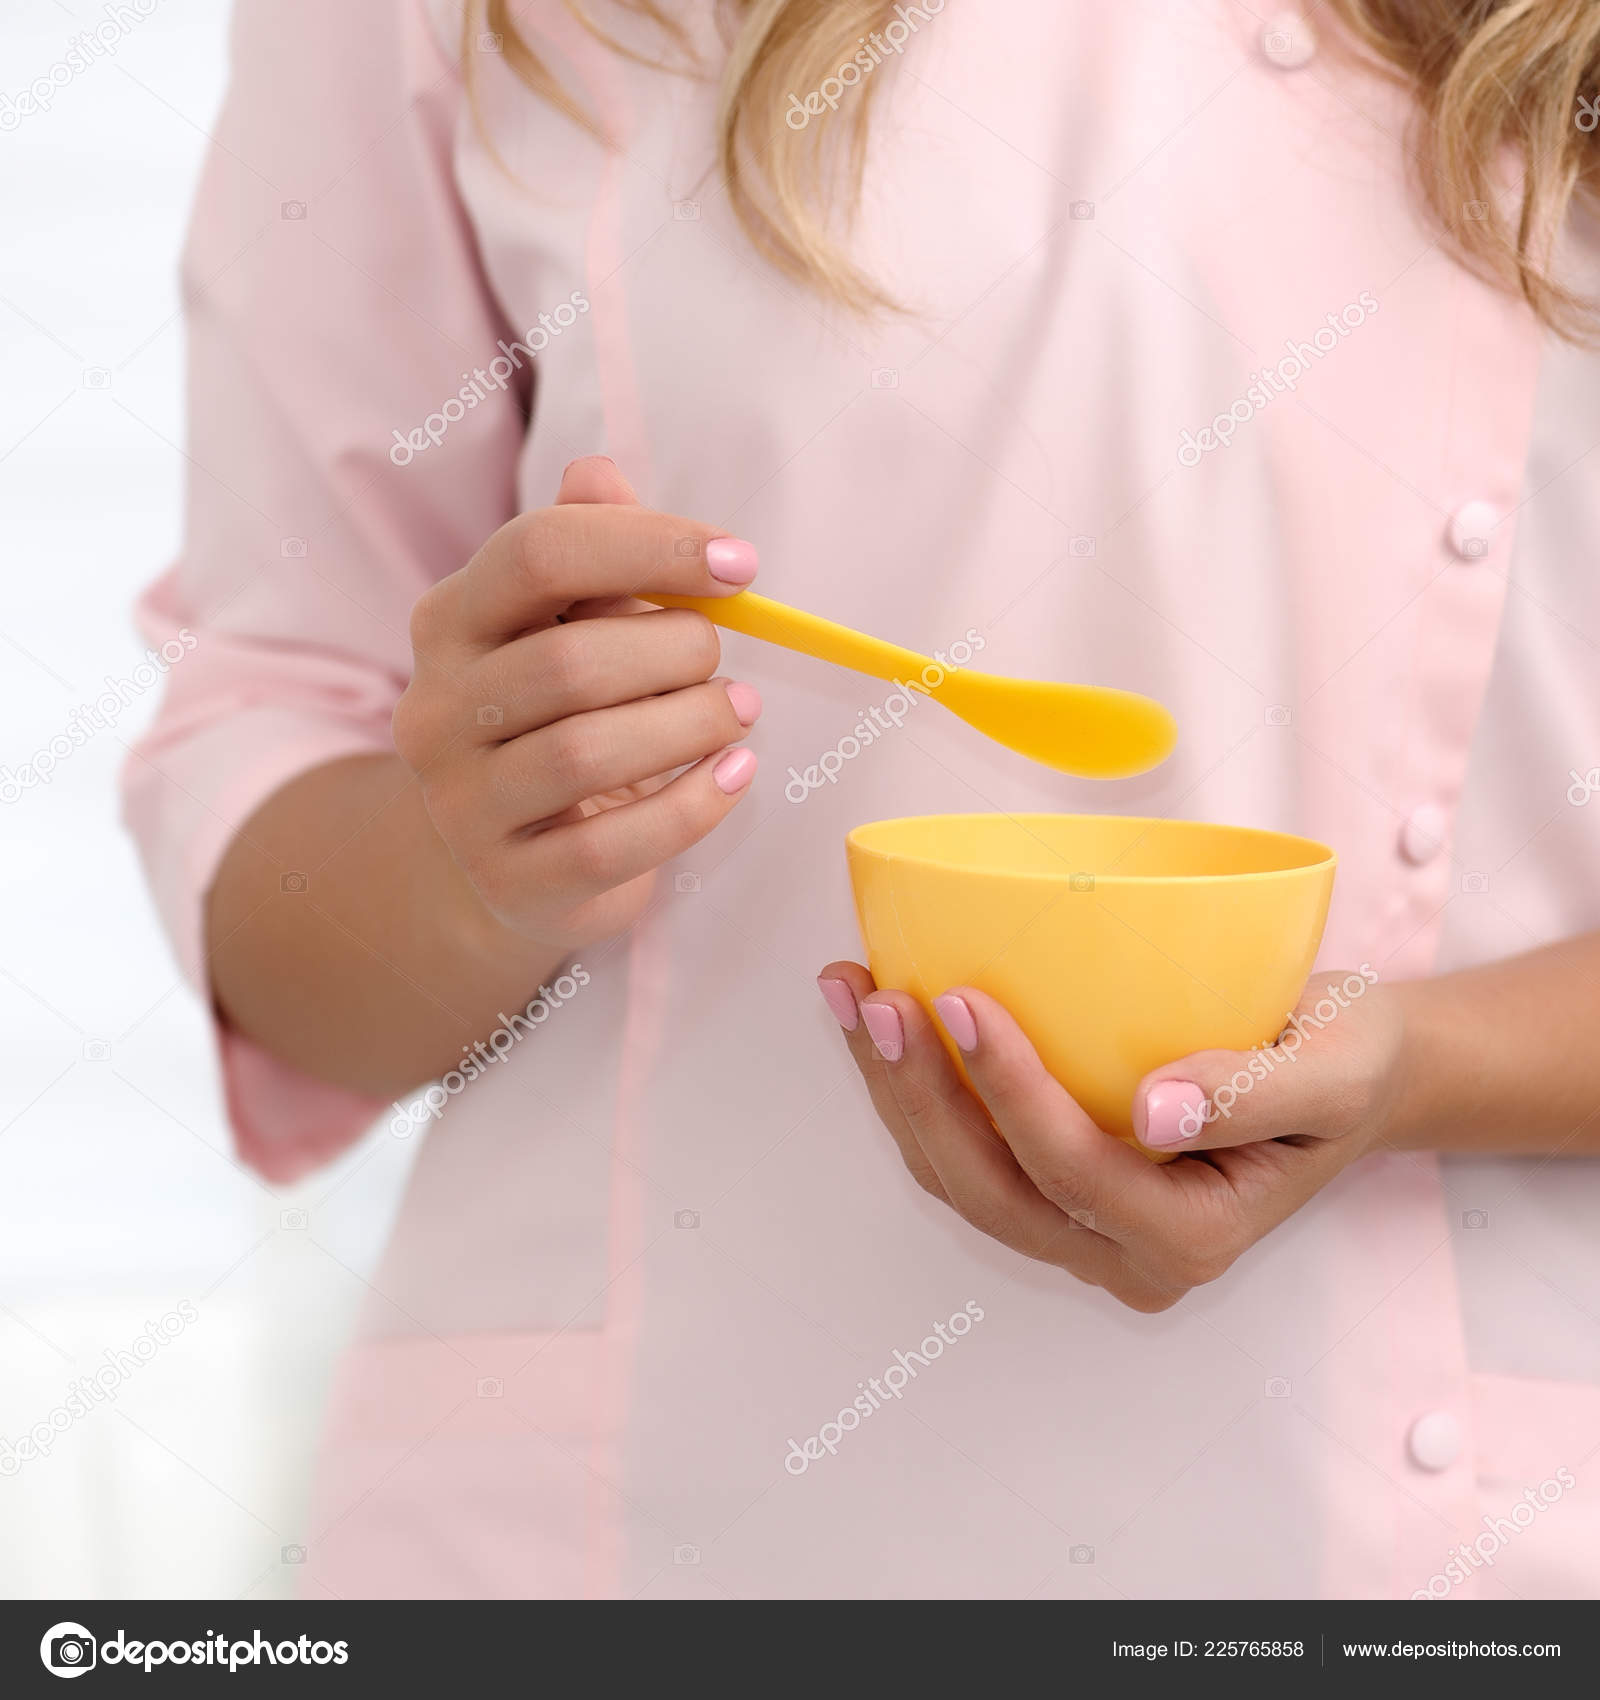 Hands Beautician Stir Ingredients Yellow Cup Applying Mask